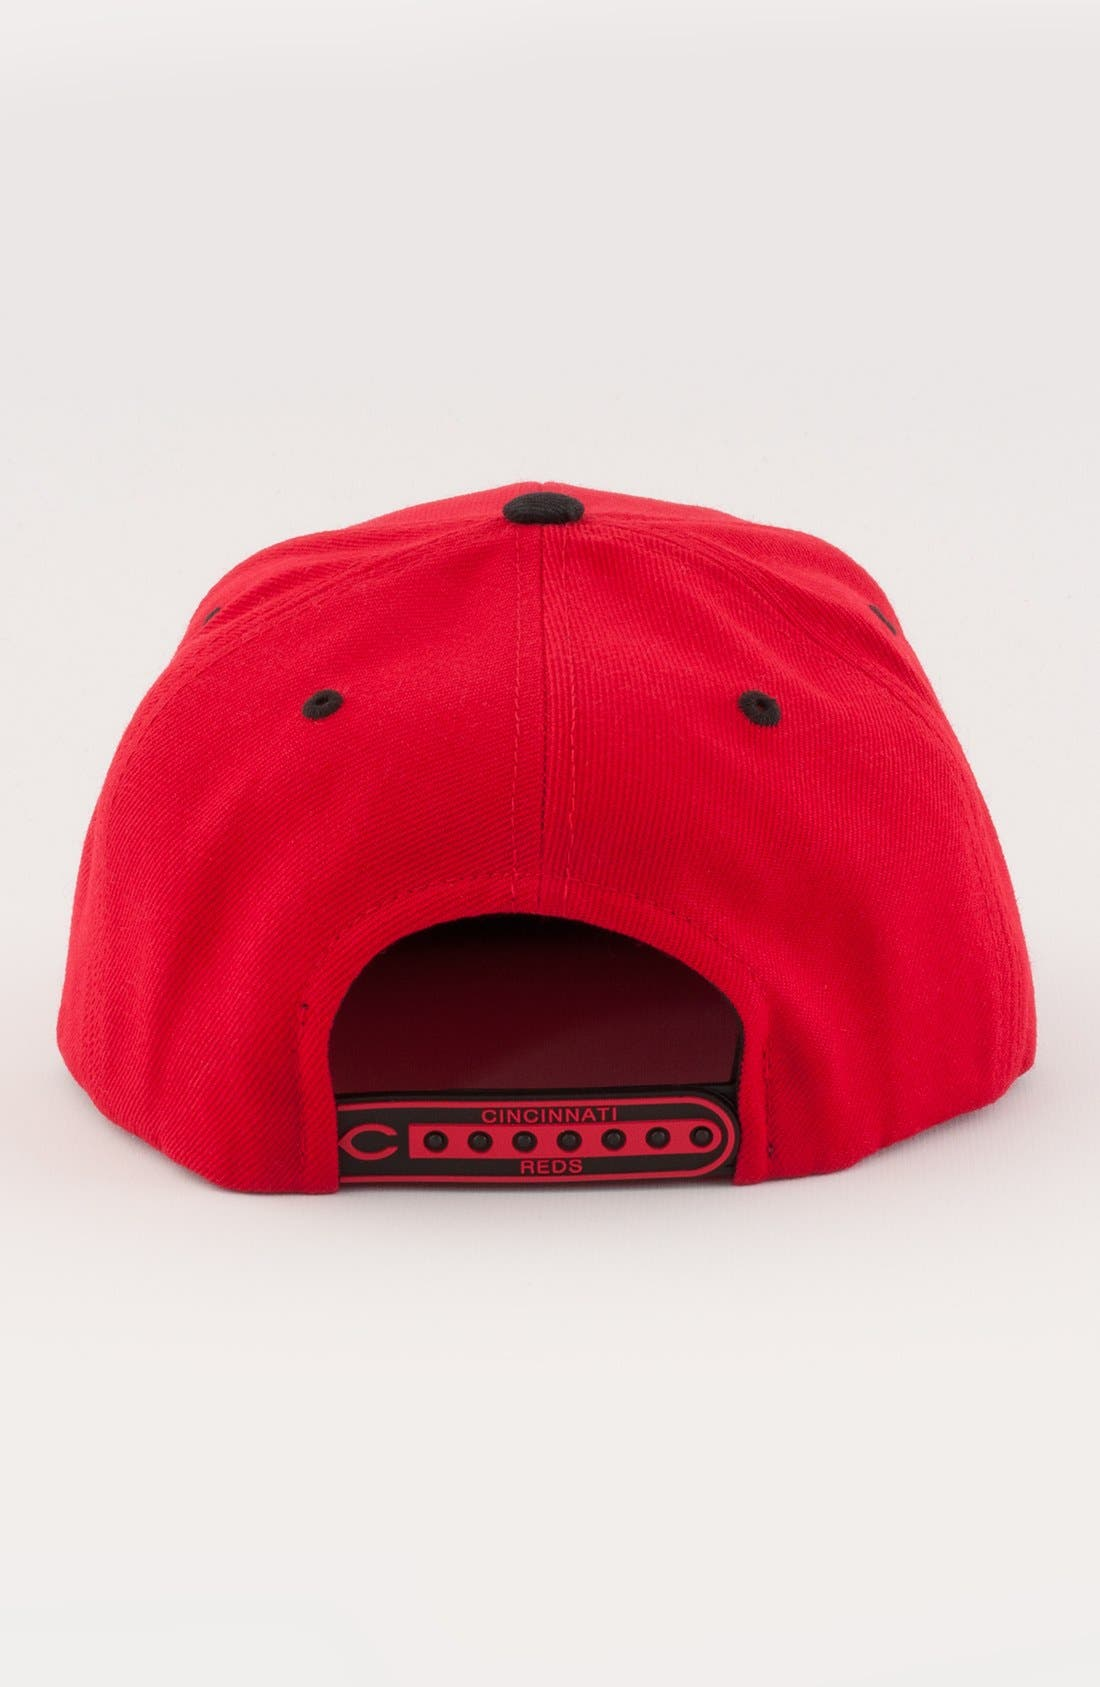 Alternate Image 2  - American Needle 'Cincinnati Reds - Back 2 Front' Snapback Baseball Cap